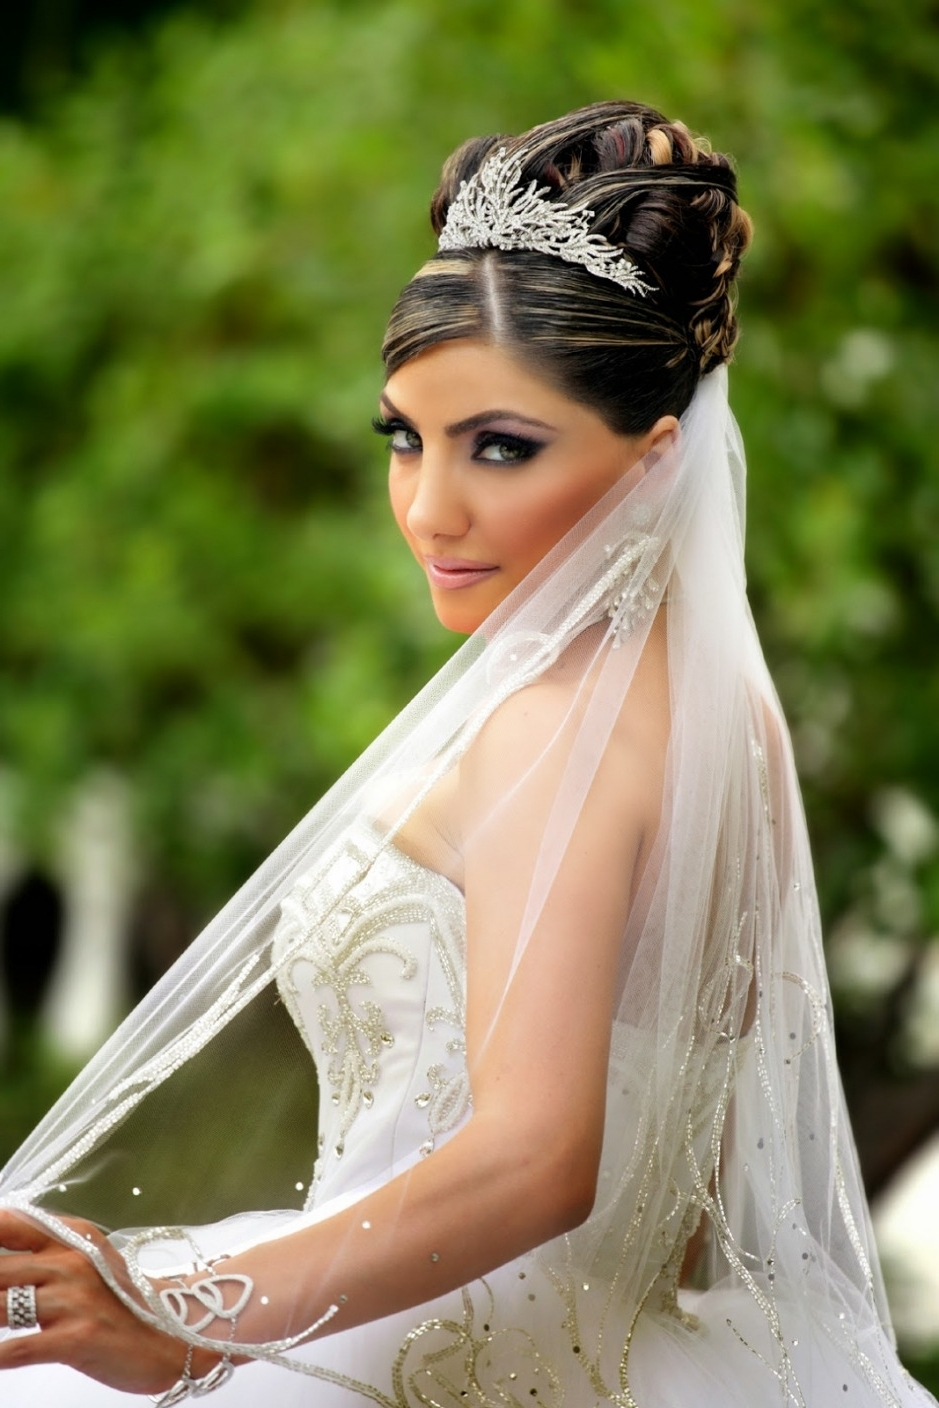 Well Known Wedding Hairstyles With Crown In Bridal Hairstyle With Tiara Hairstyles With Tiara Wedding Hairstyles (View 3 of 15)